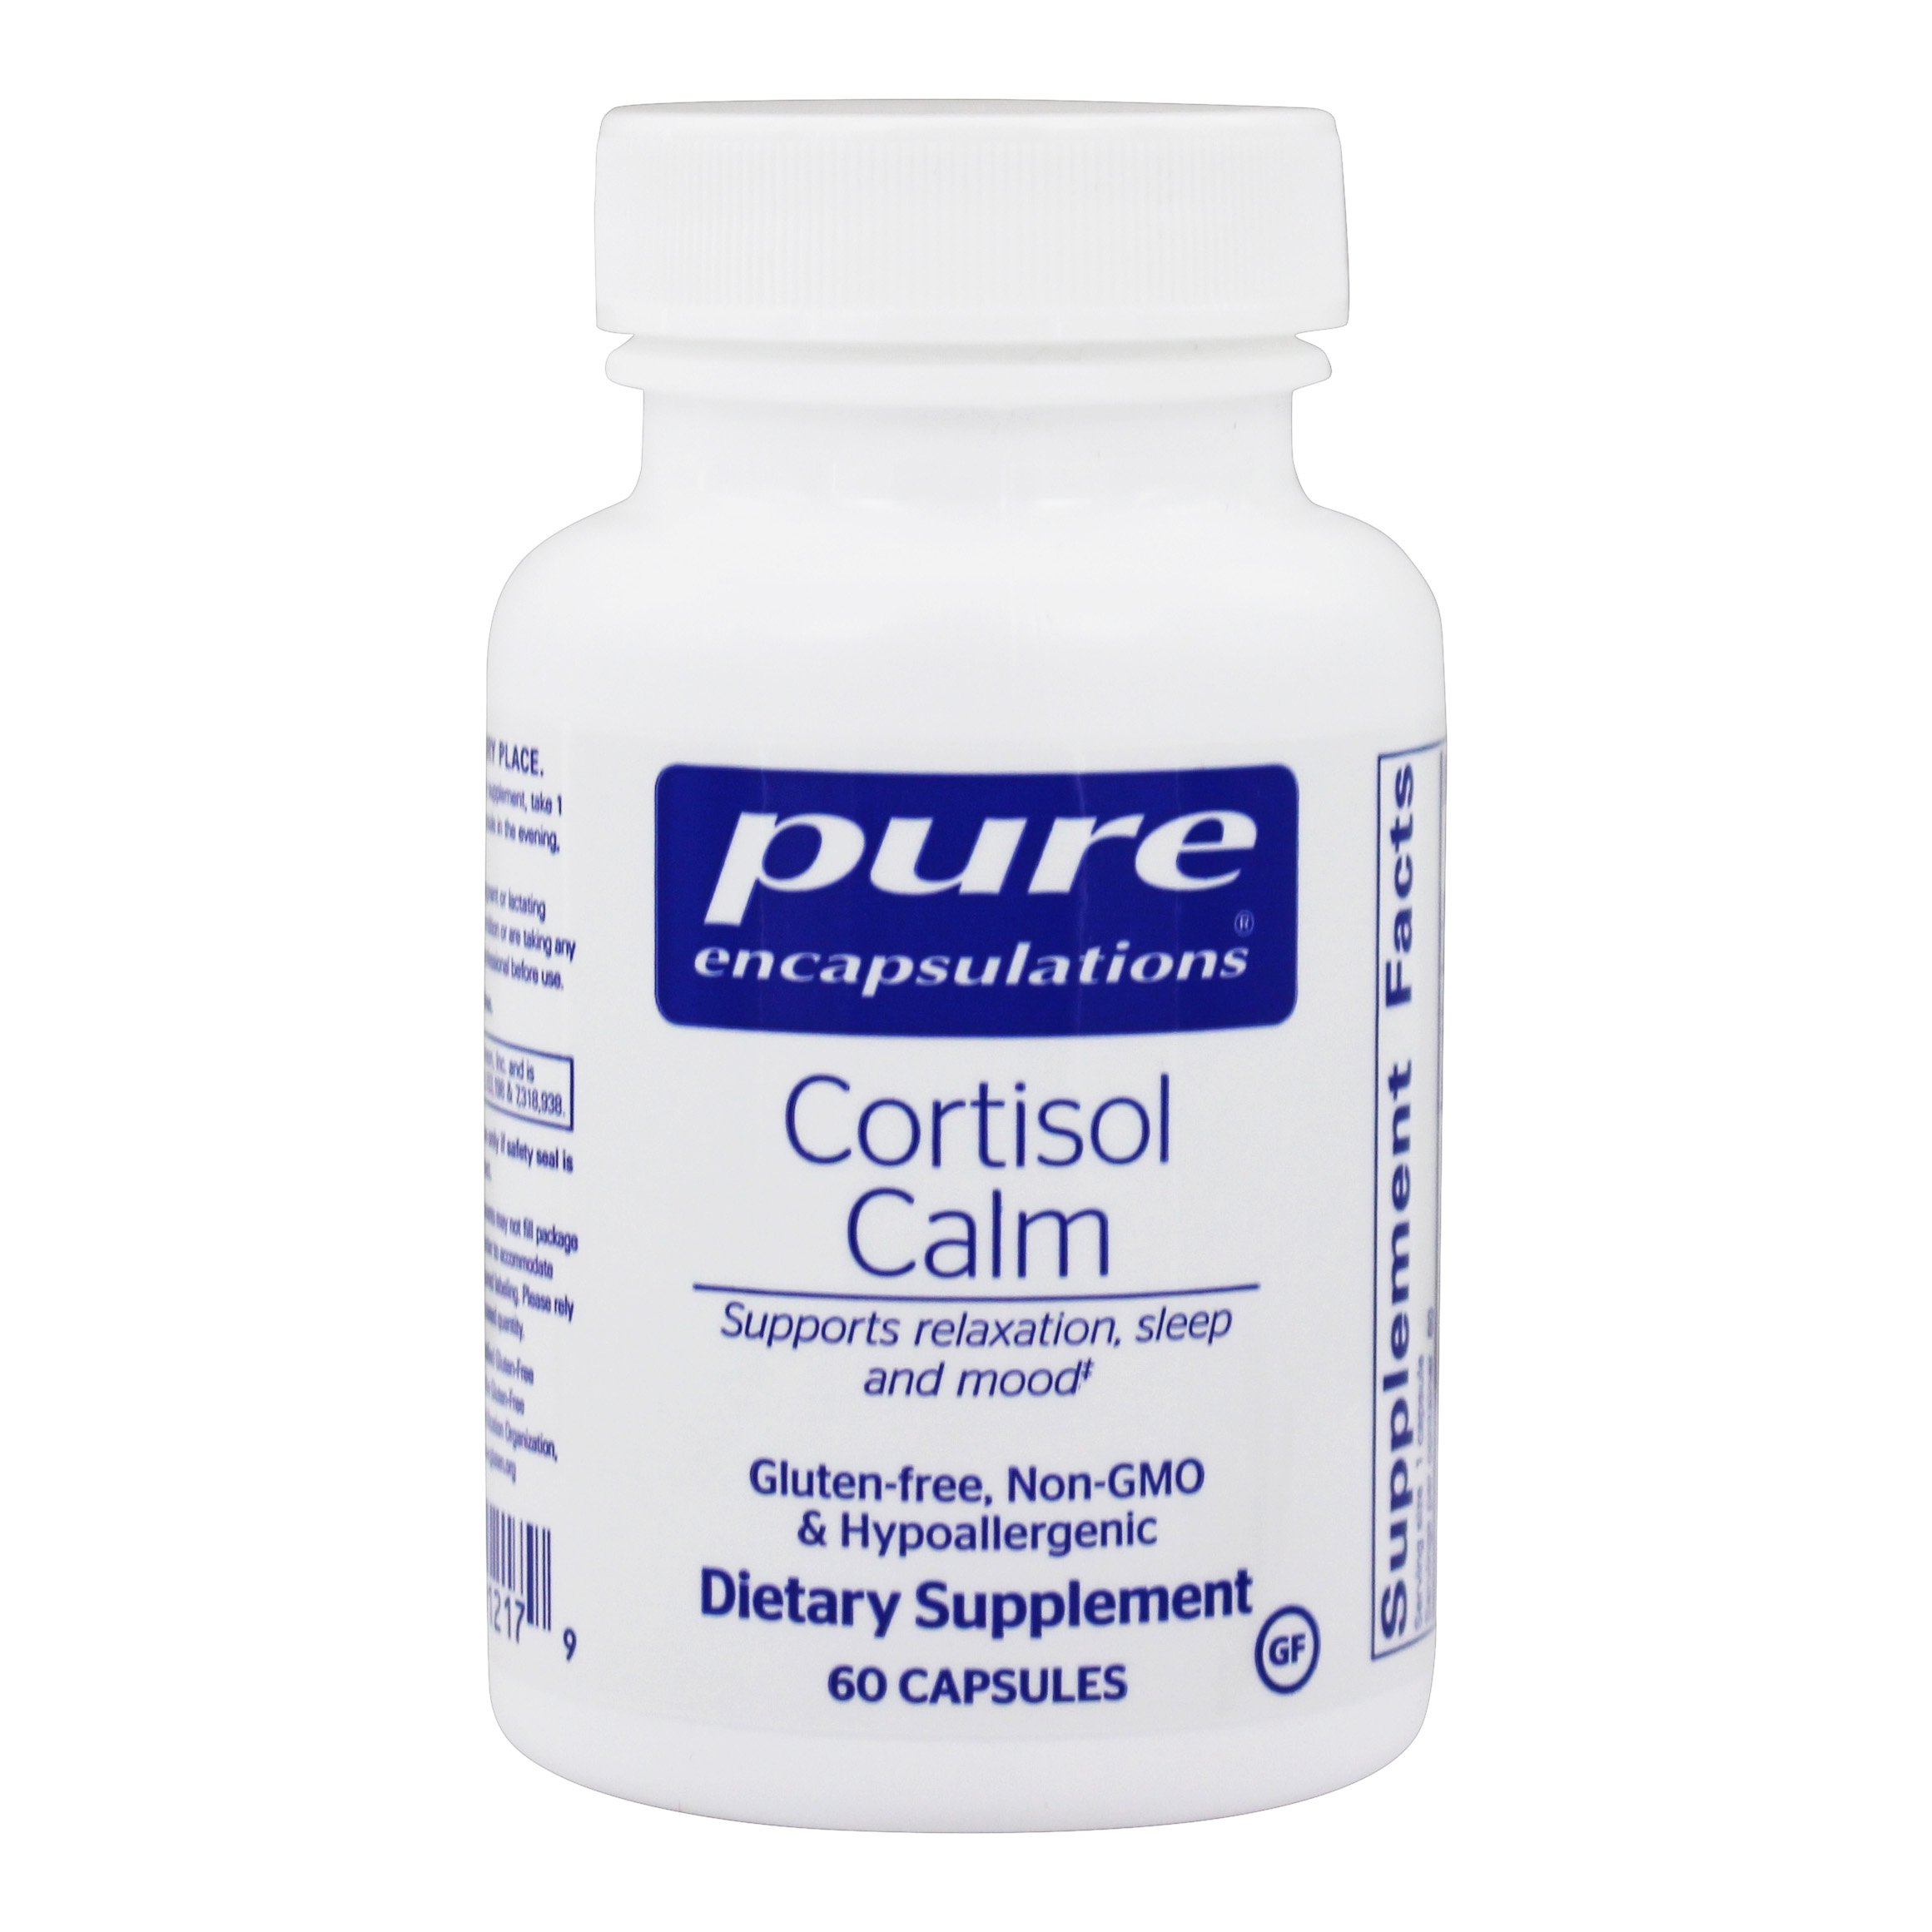 Cortisol kalme formule - 60 Capsules by Pure Encapsulations